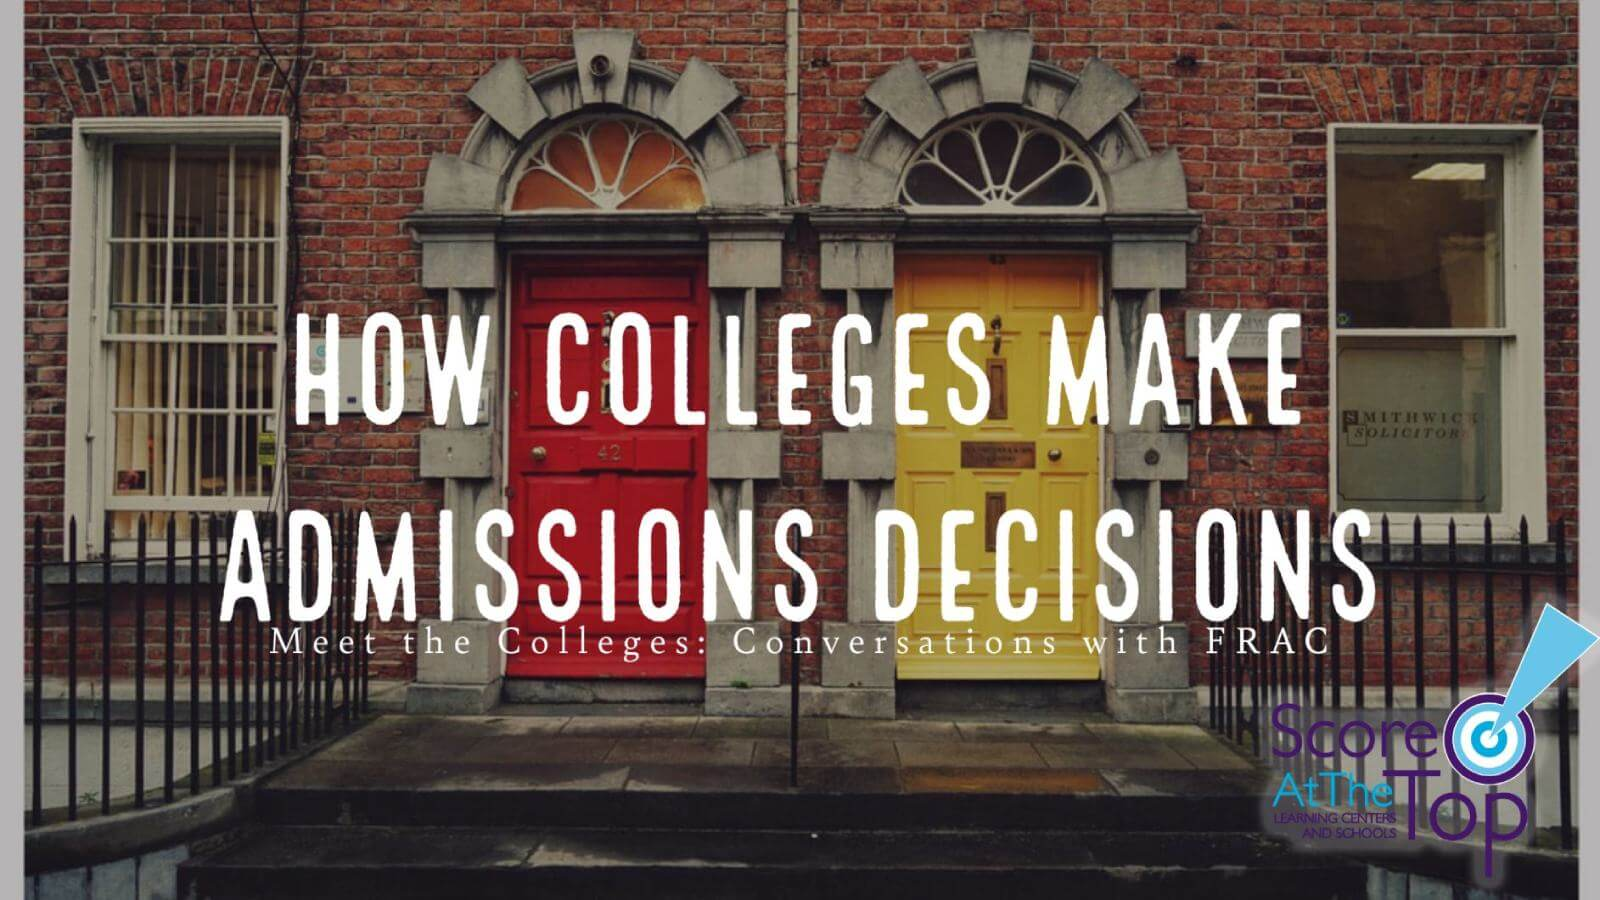 How colleges make admission decisions